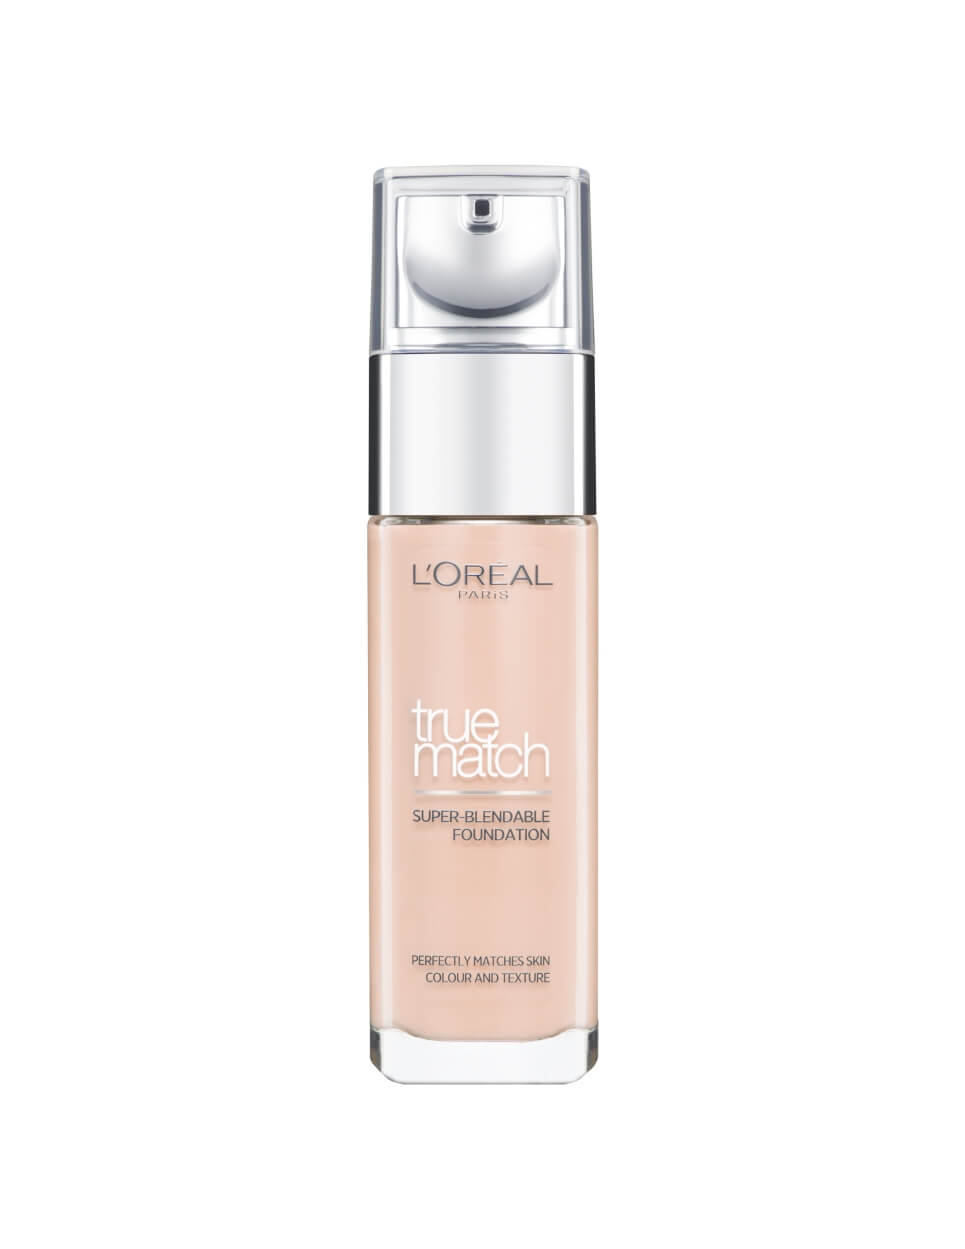 LOreal True Match Foundation - 8 Best Foundations for Dry Skin Available in India with Review & Price